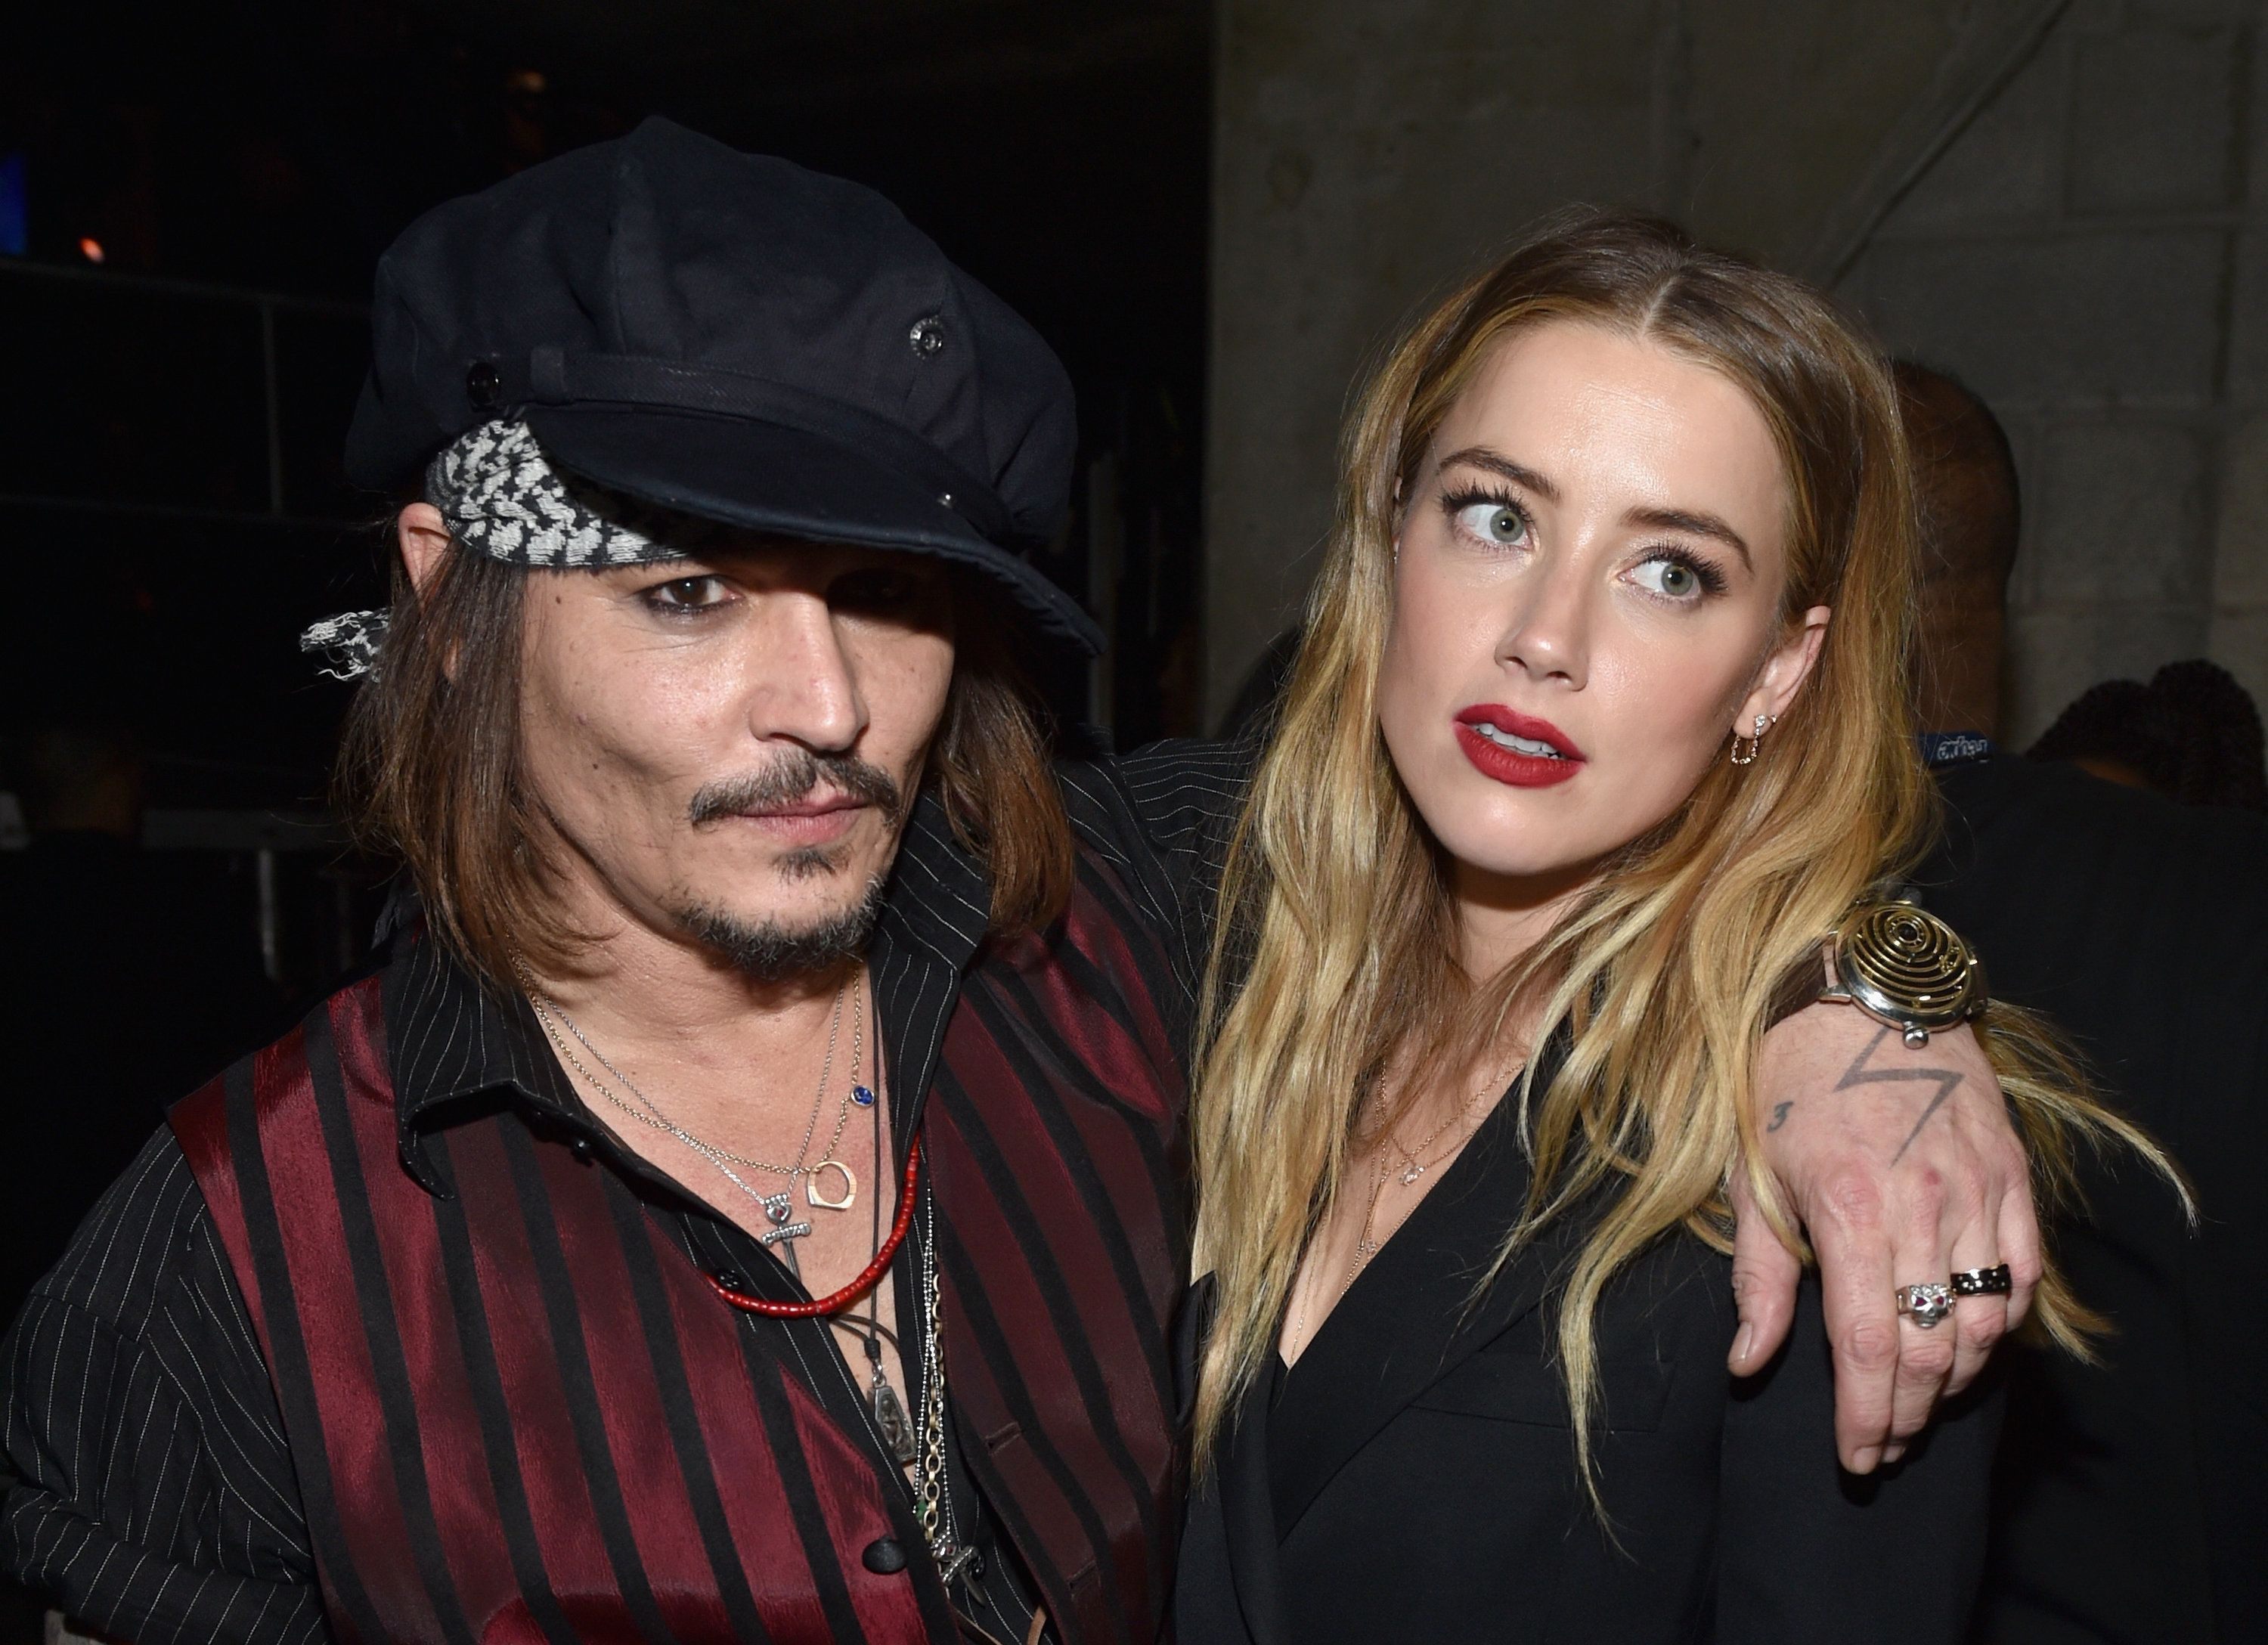 view download images  Images Court Documents Detail Johnny Depp's Alleged Abuse Against Amber Heard | HuffPost